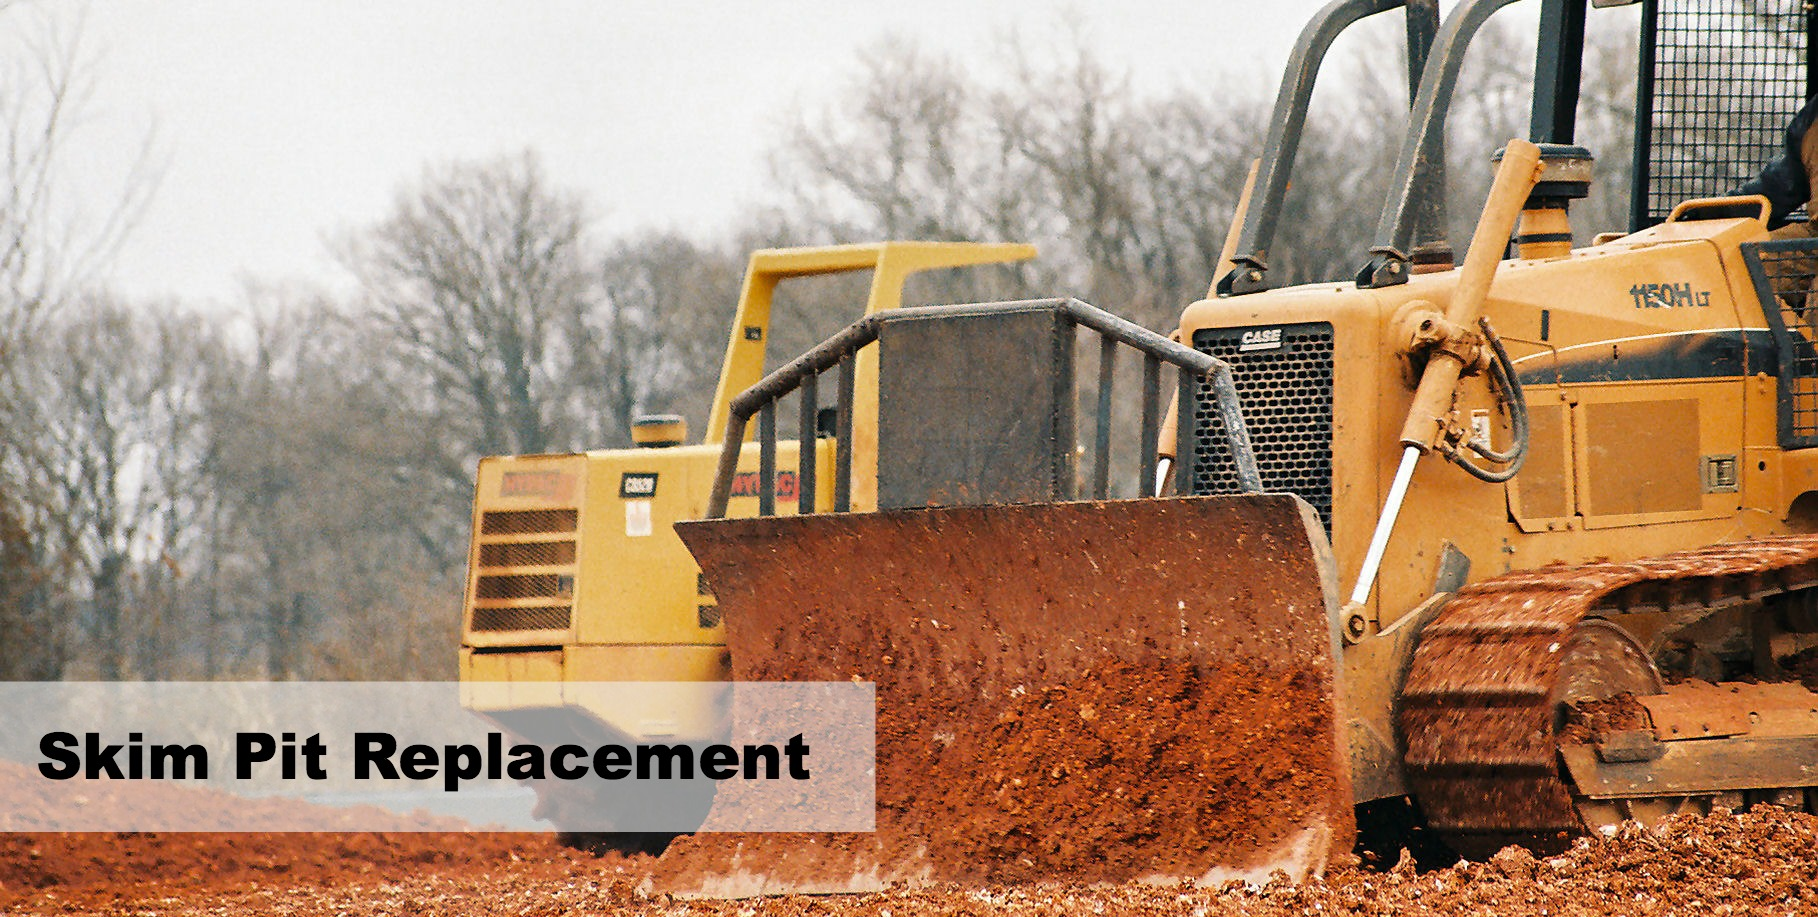 excavator clearing soybean plant